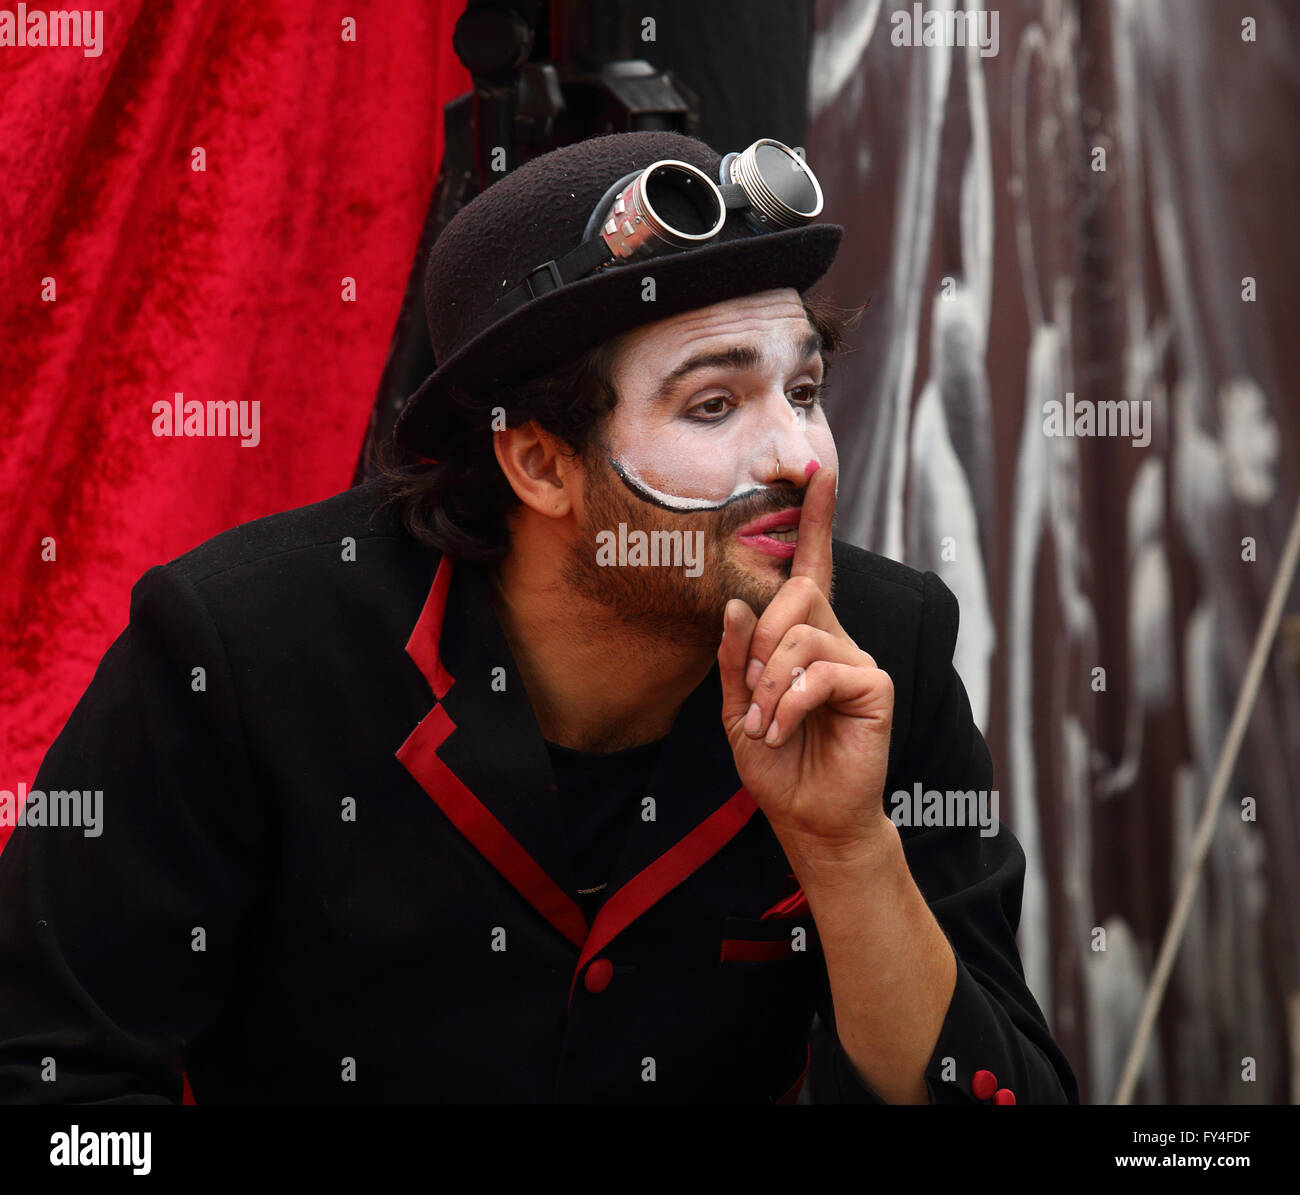 Male clown with bowler hat and goggles with one finger to his lips in a sssshhhh-gesture - Stock Image